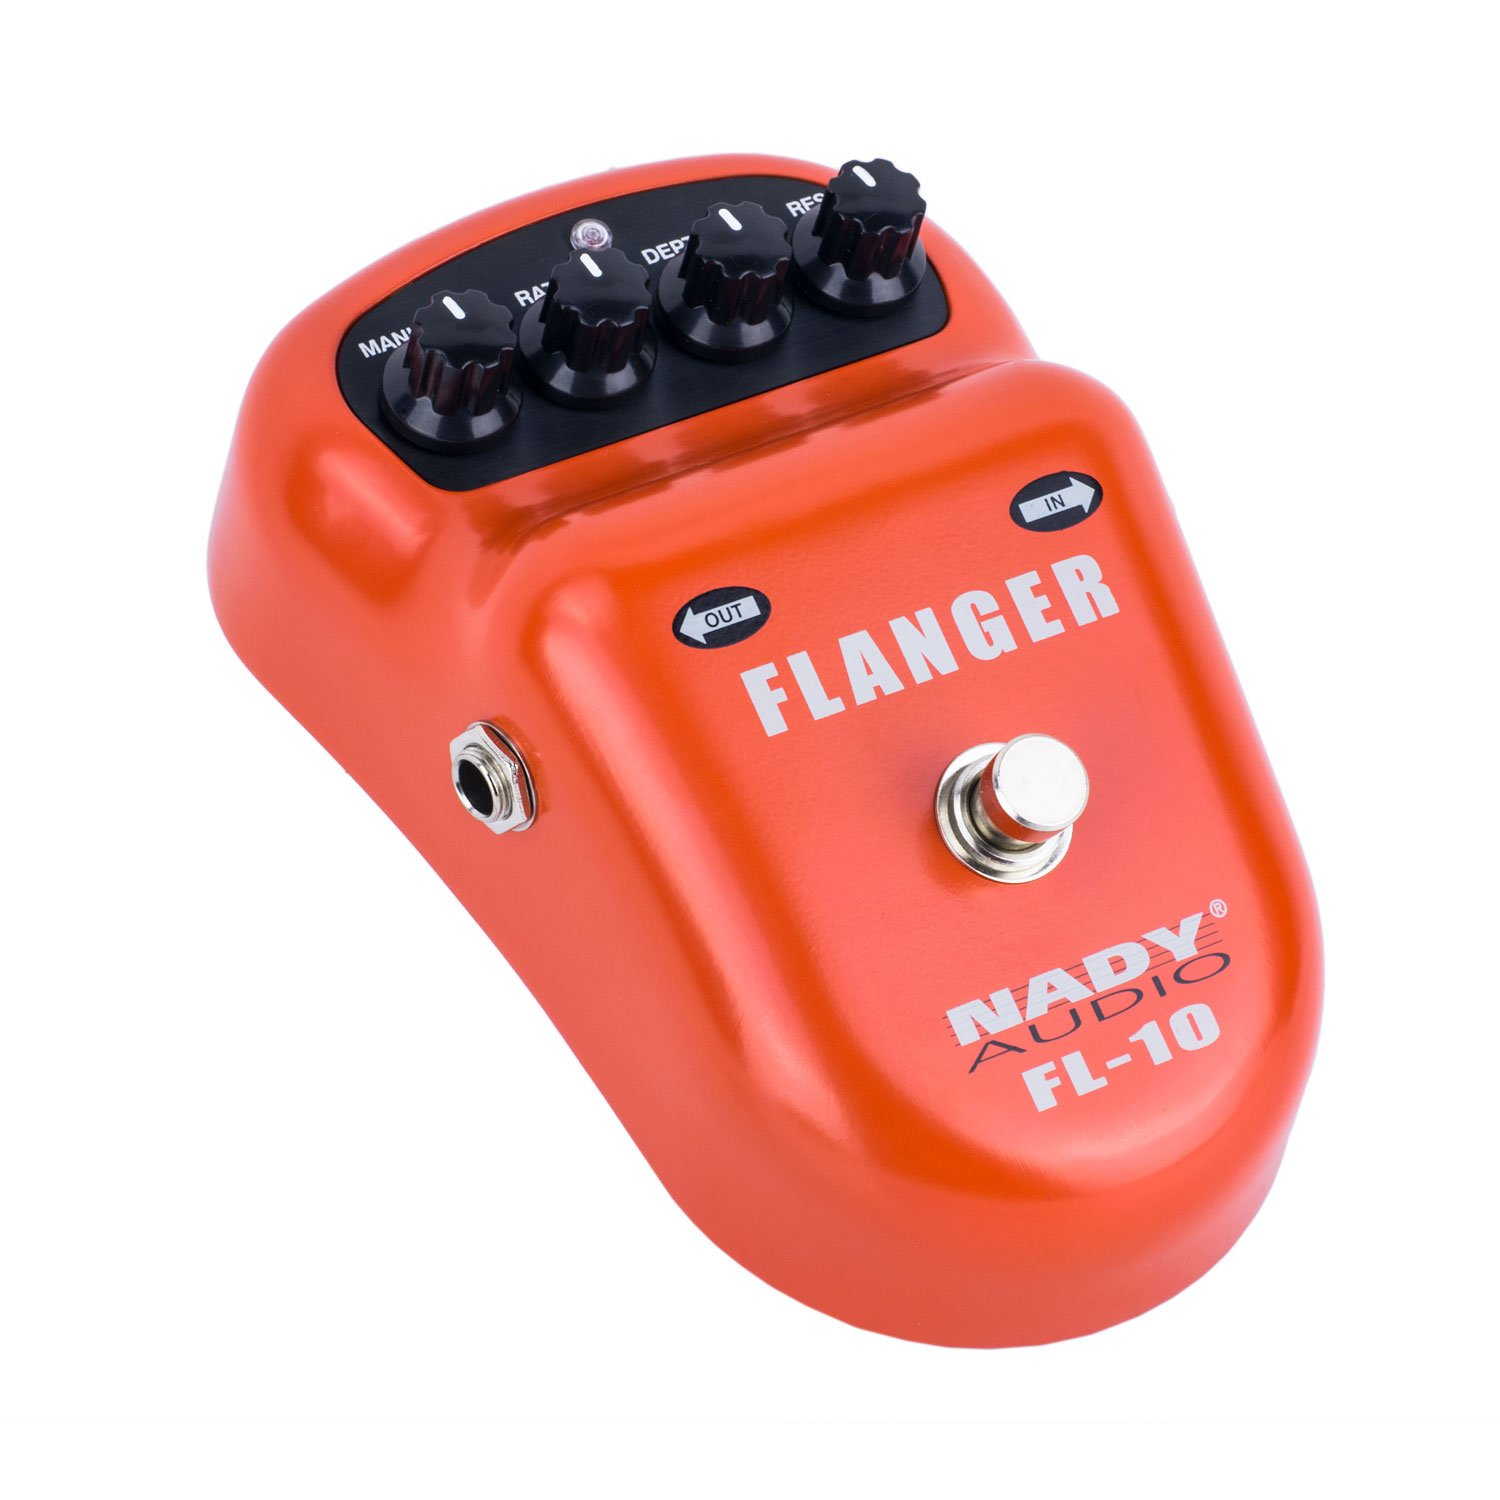 Nady FL-10 Flanger Pedal - Classic, warm & smooth guitar effects - Manual, Rate, Depth, and Resonance controls